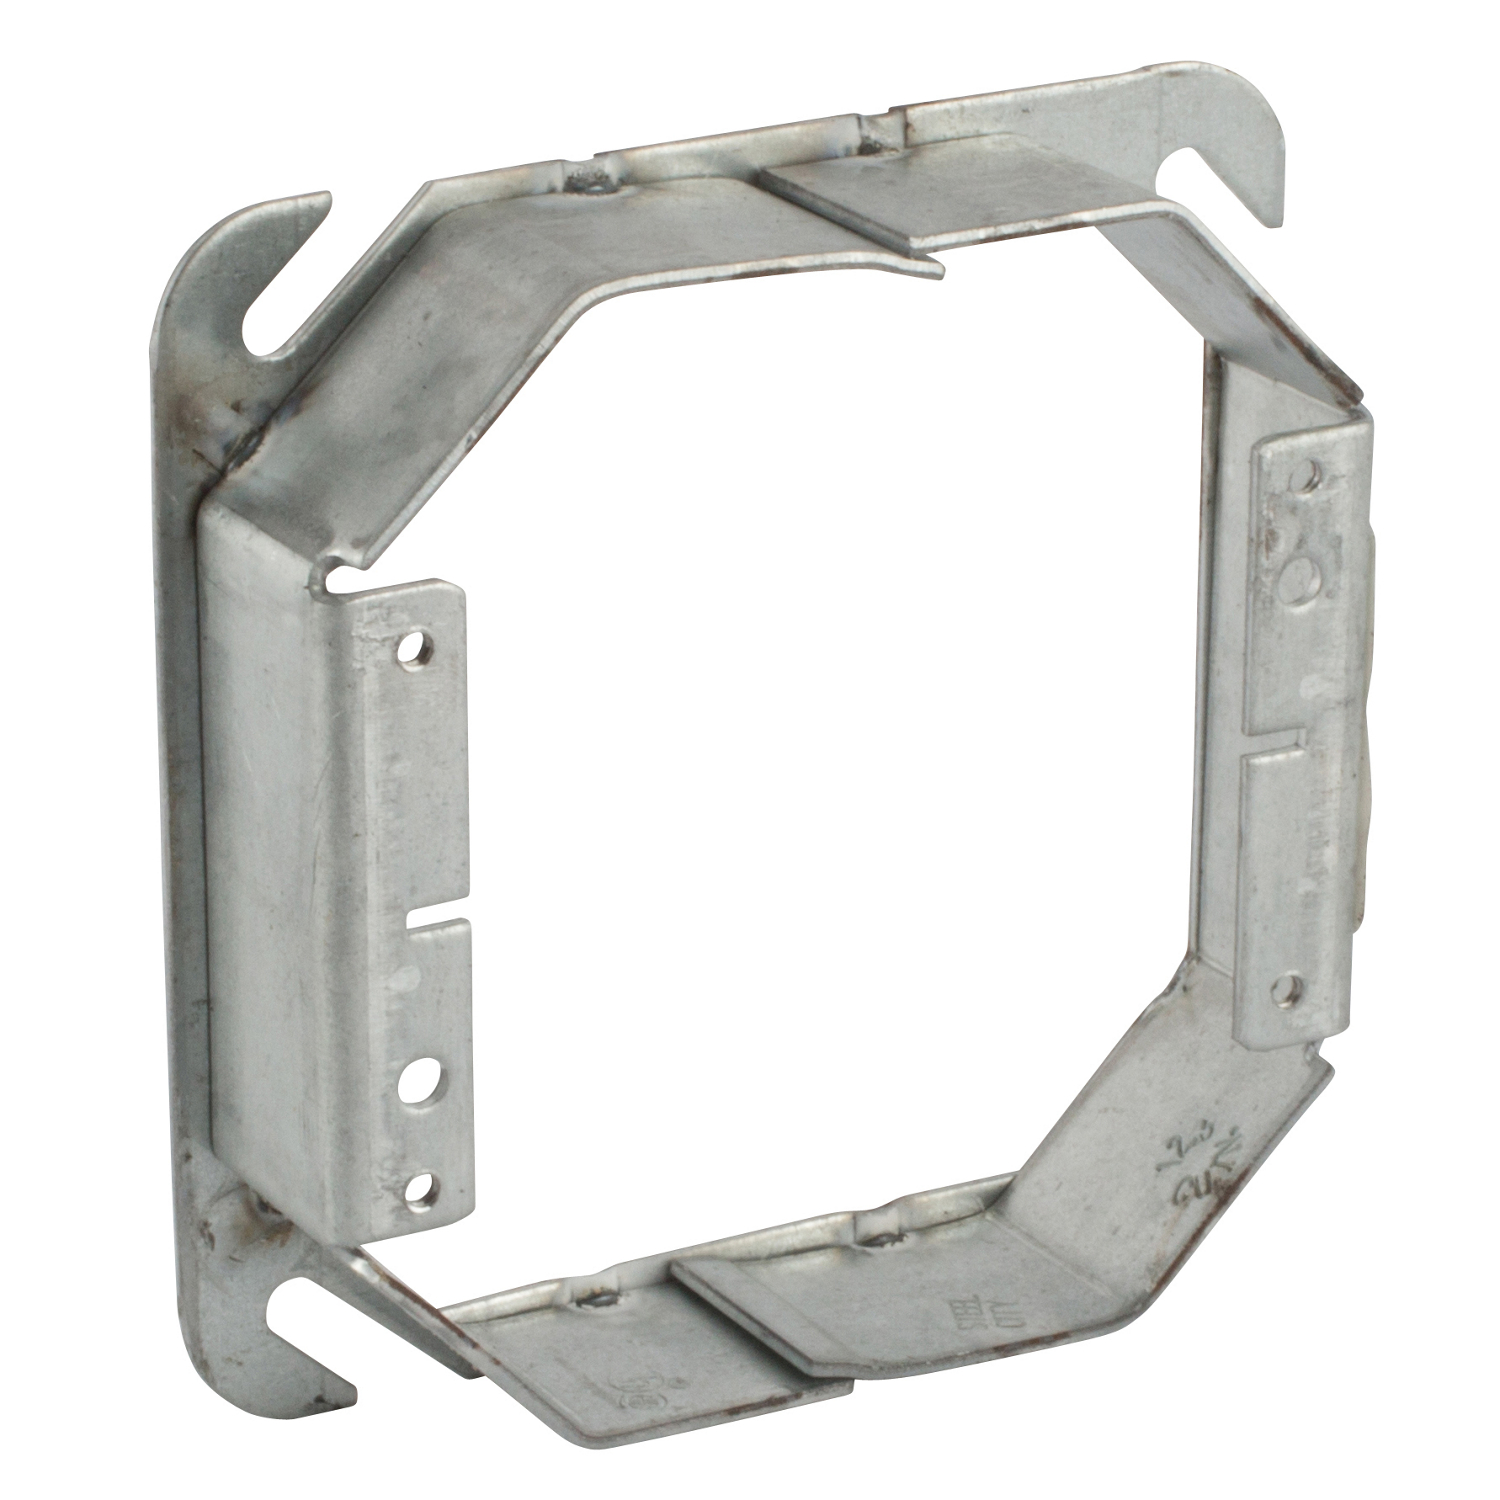 STL-CTY 52C521 STEEL COVER